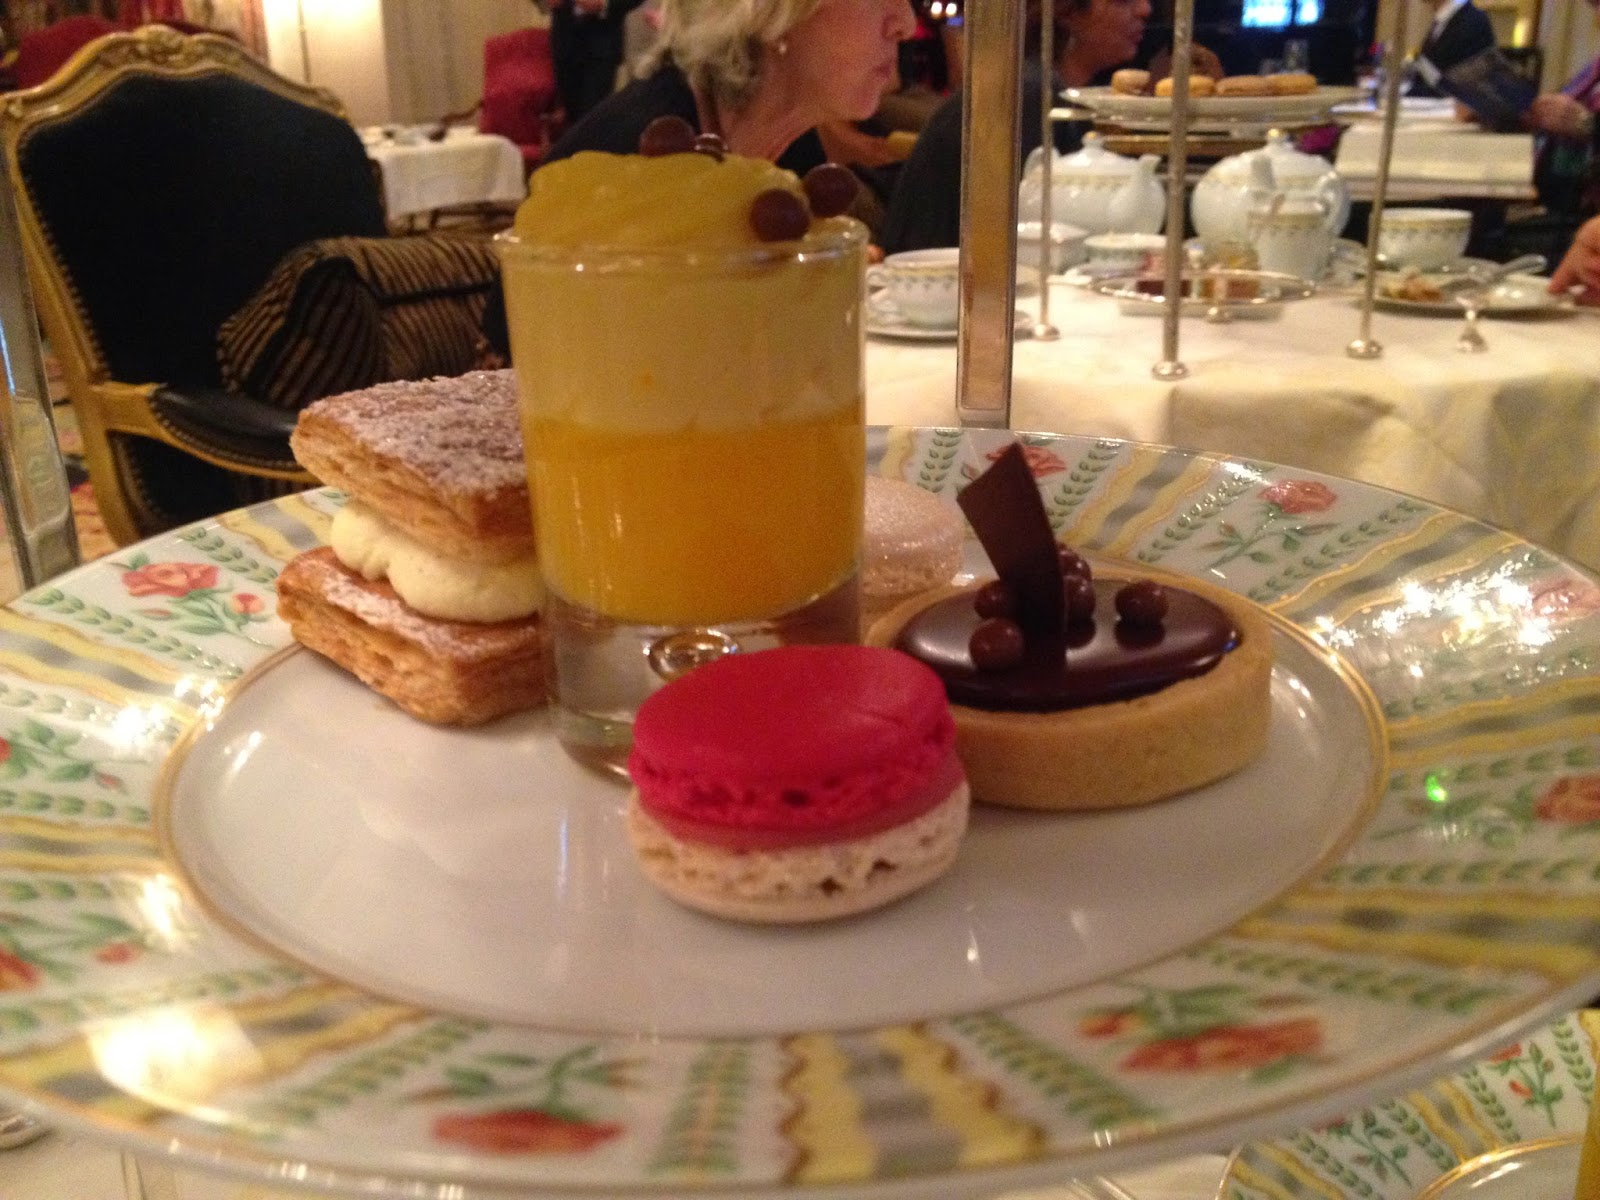 Tea time desserts at La Galerie, Four Seasons Hotel George V, Paris